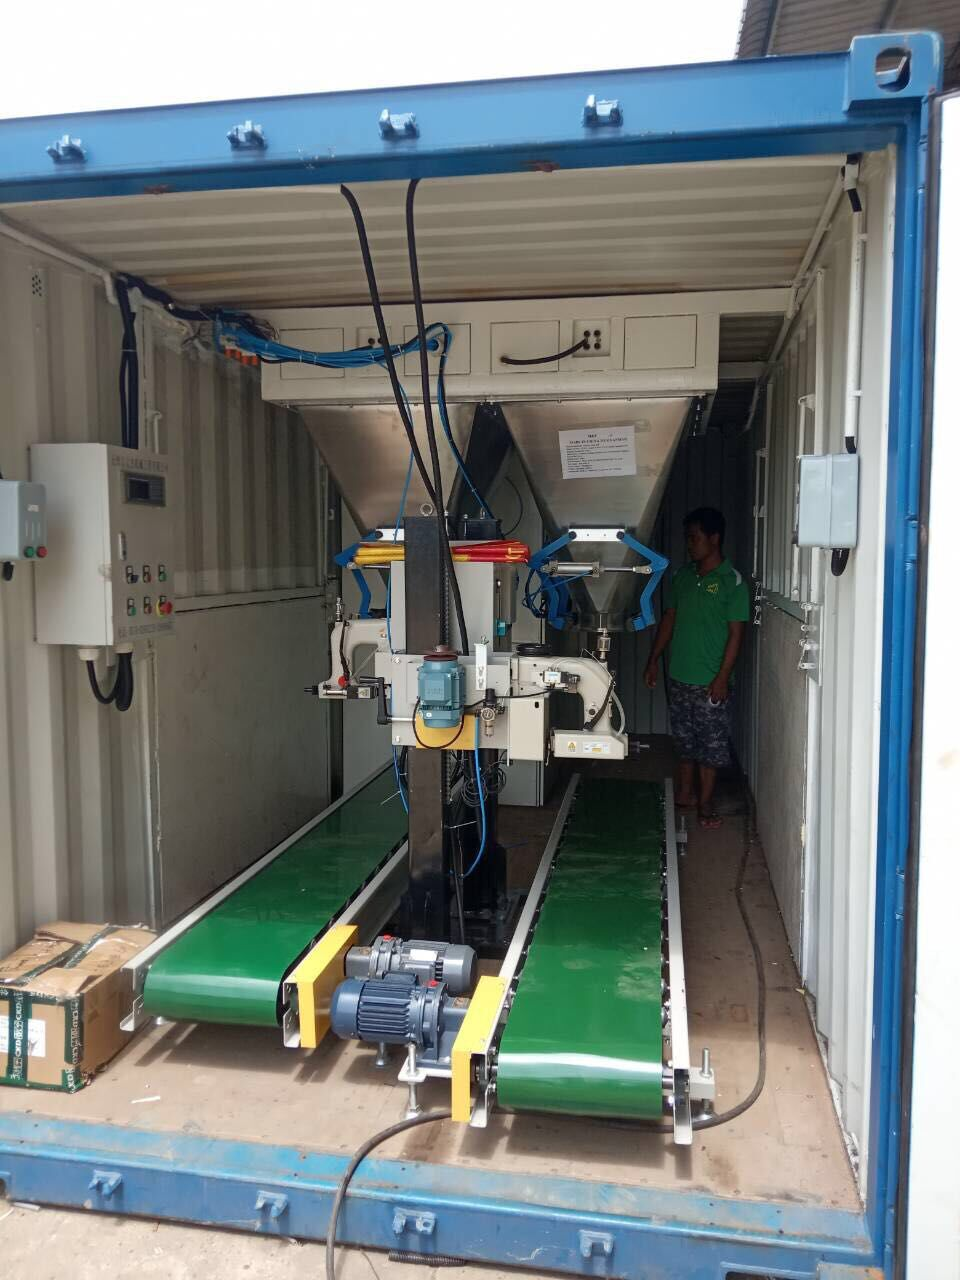 Containerised Bagging System, Mobile Bagging Unit, Mobile Containserized Bagging Unit, Wuxi HY Machinery Co., Ltd